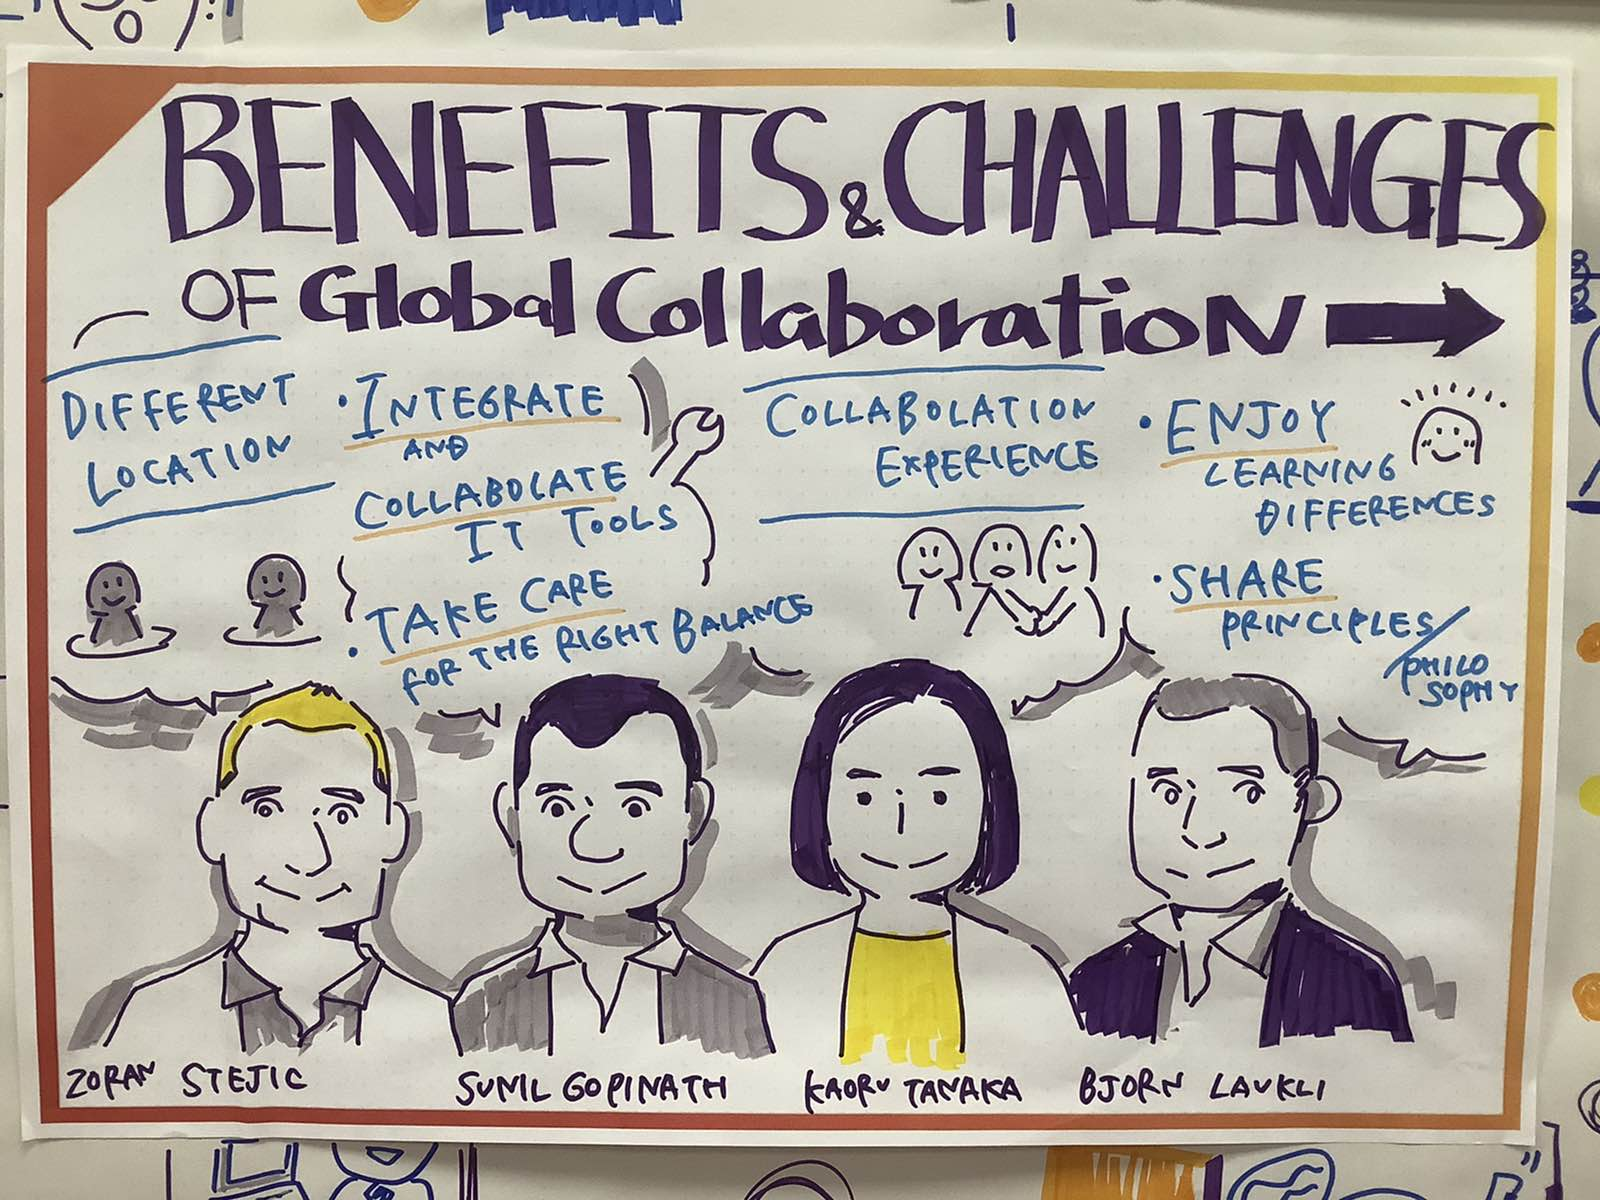 Benefits & Challenges of Global Collaboration